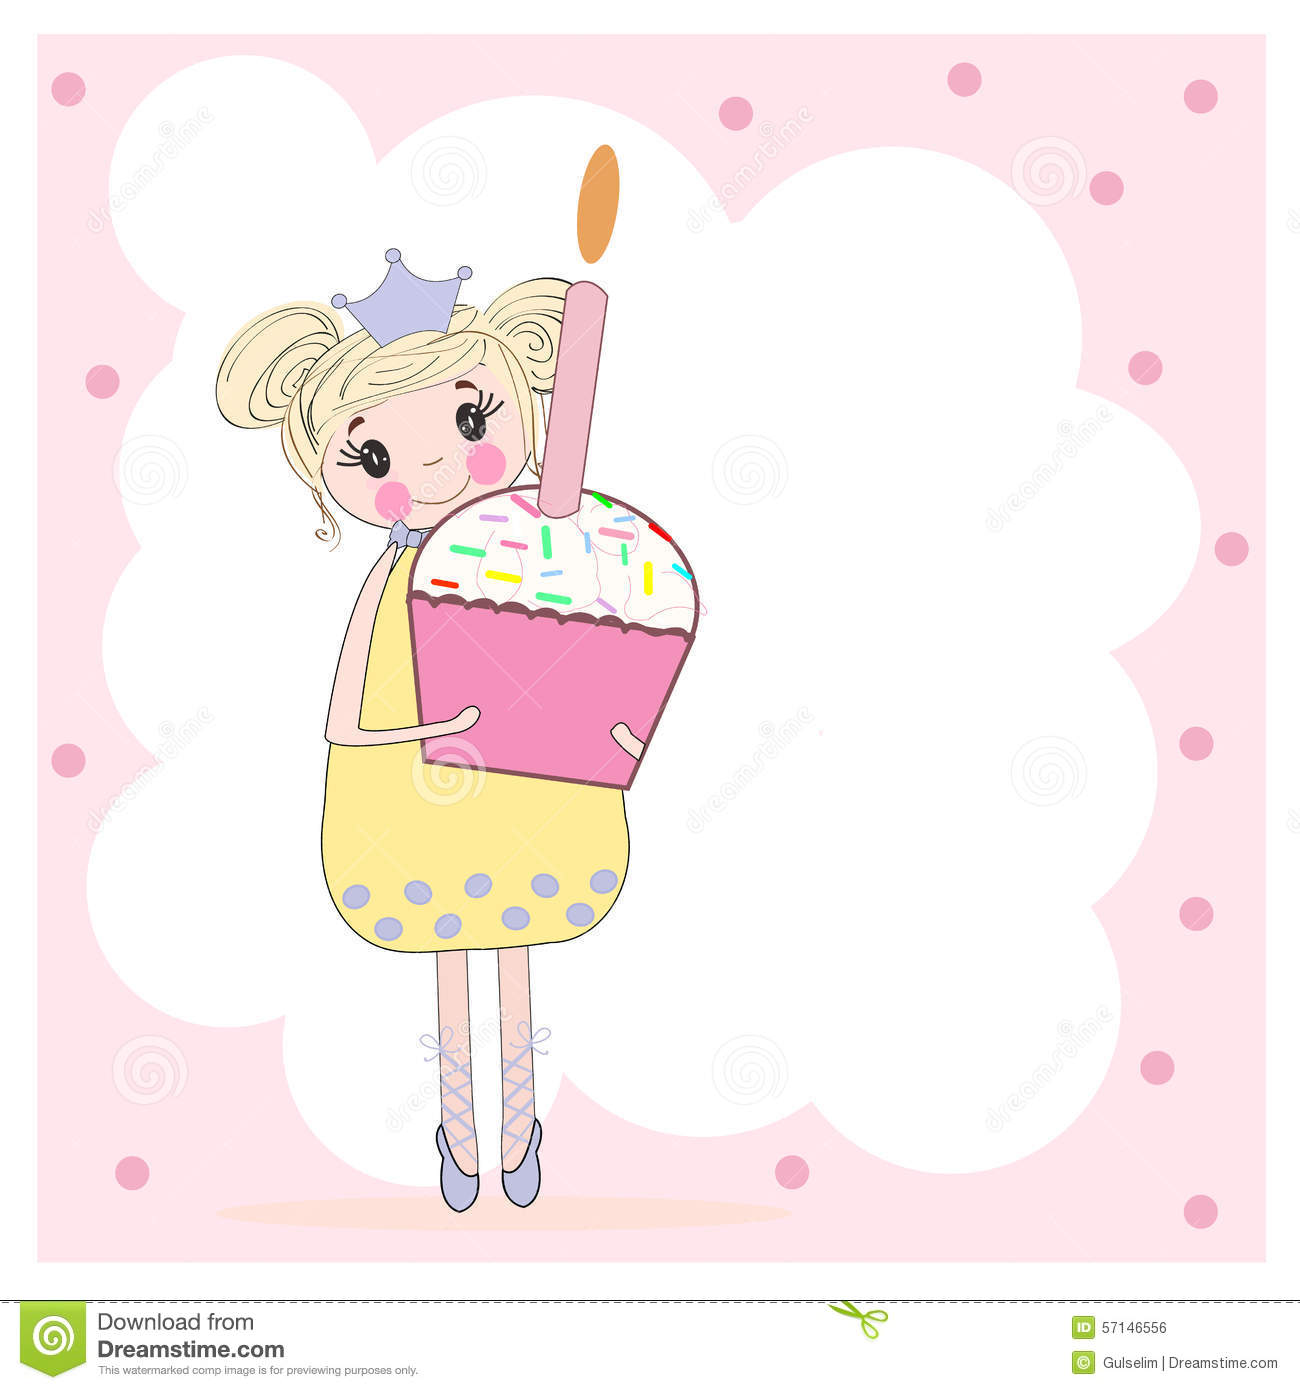 Cute girl holding birthday pie happy birthday card stock vector cute girl holding birthday pie happy birthday card stock vector illustration of colorful design 57146556 bookmarktalkfo Images